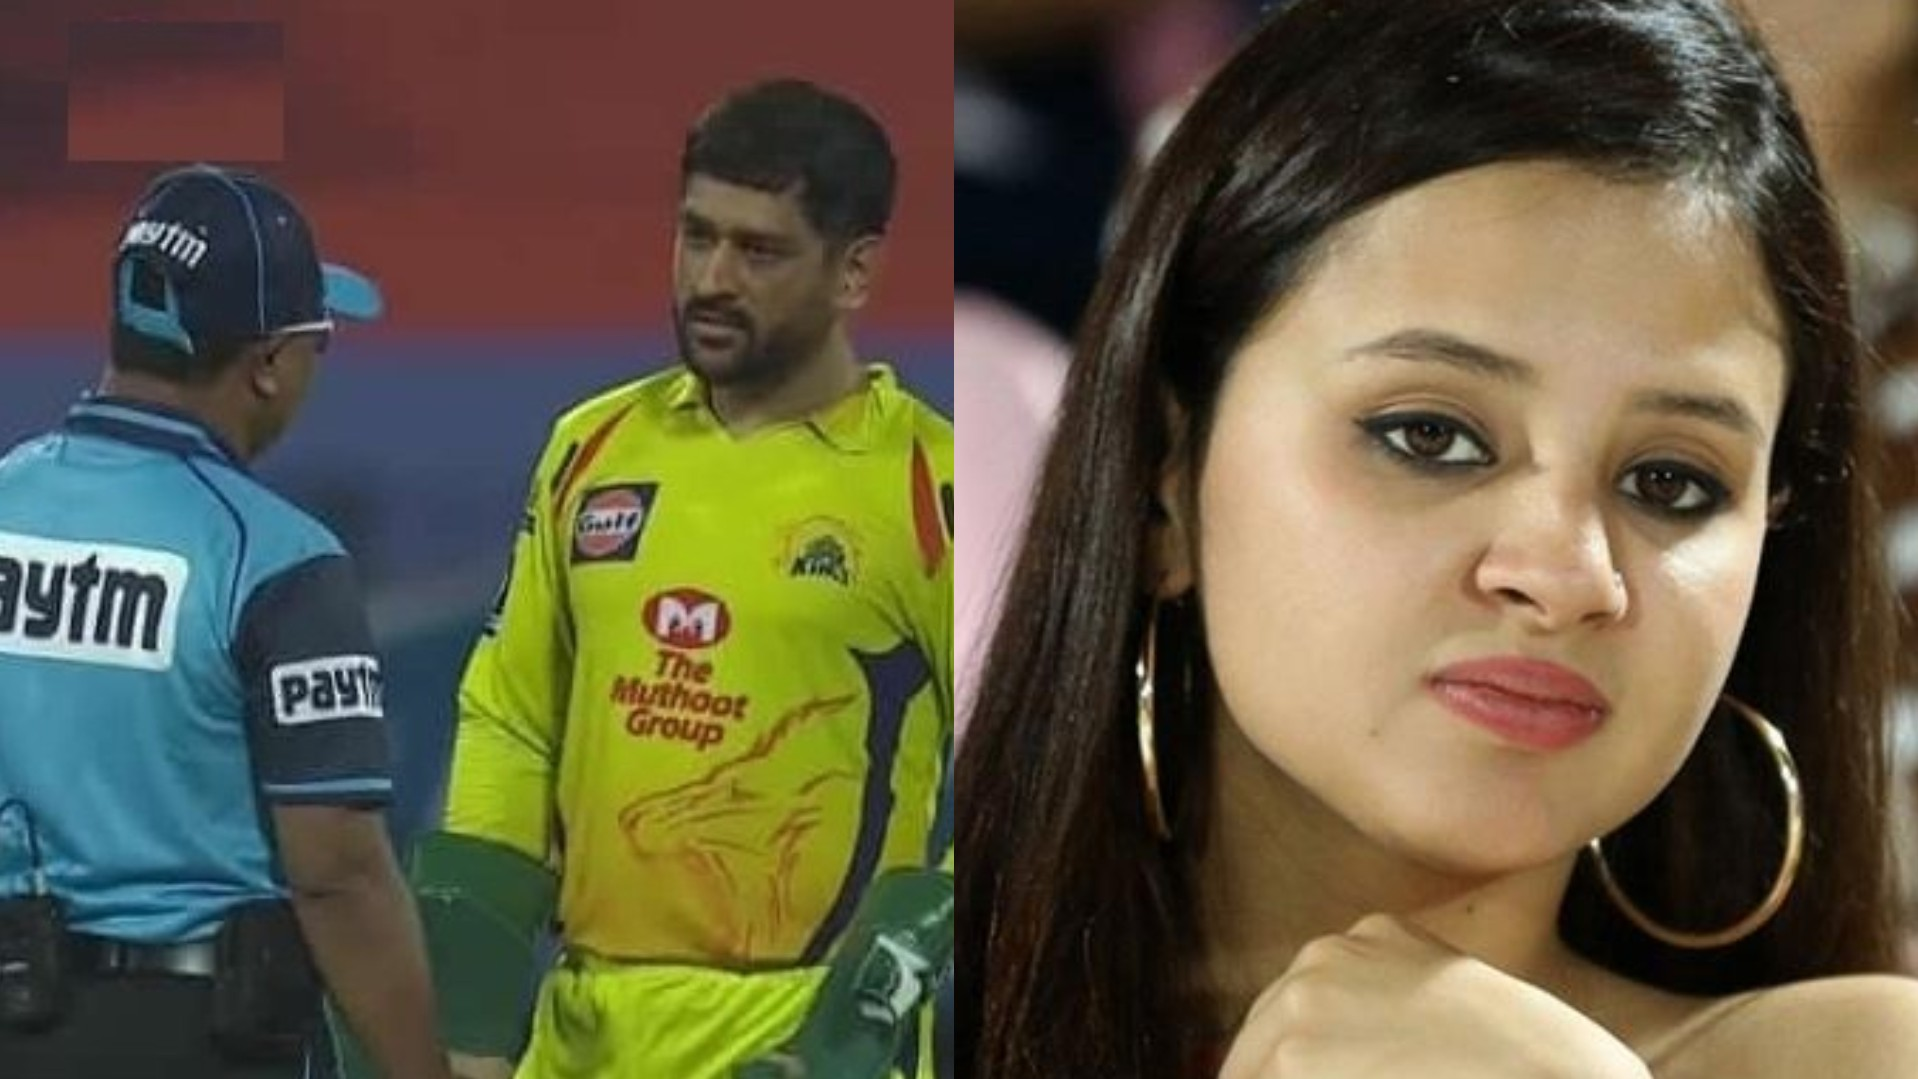 IPL 2020: MS Dhoni argues with umpires as they overturn Tom Curran's dismissal; Sakshi reacts